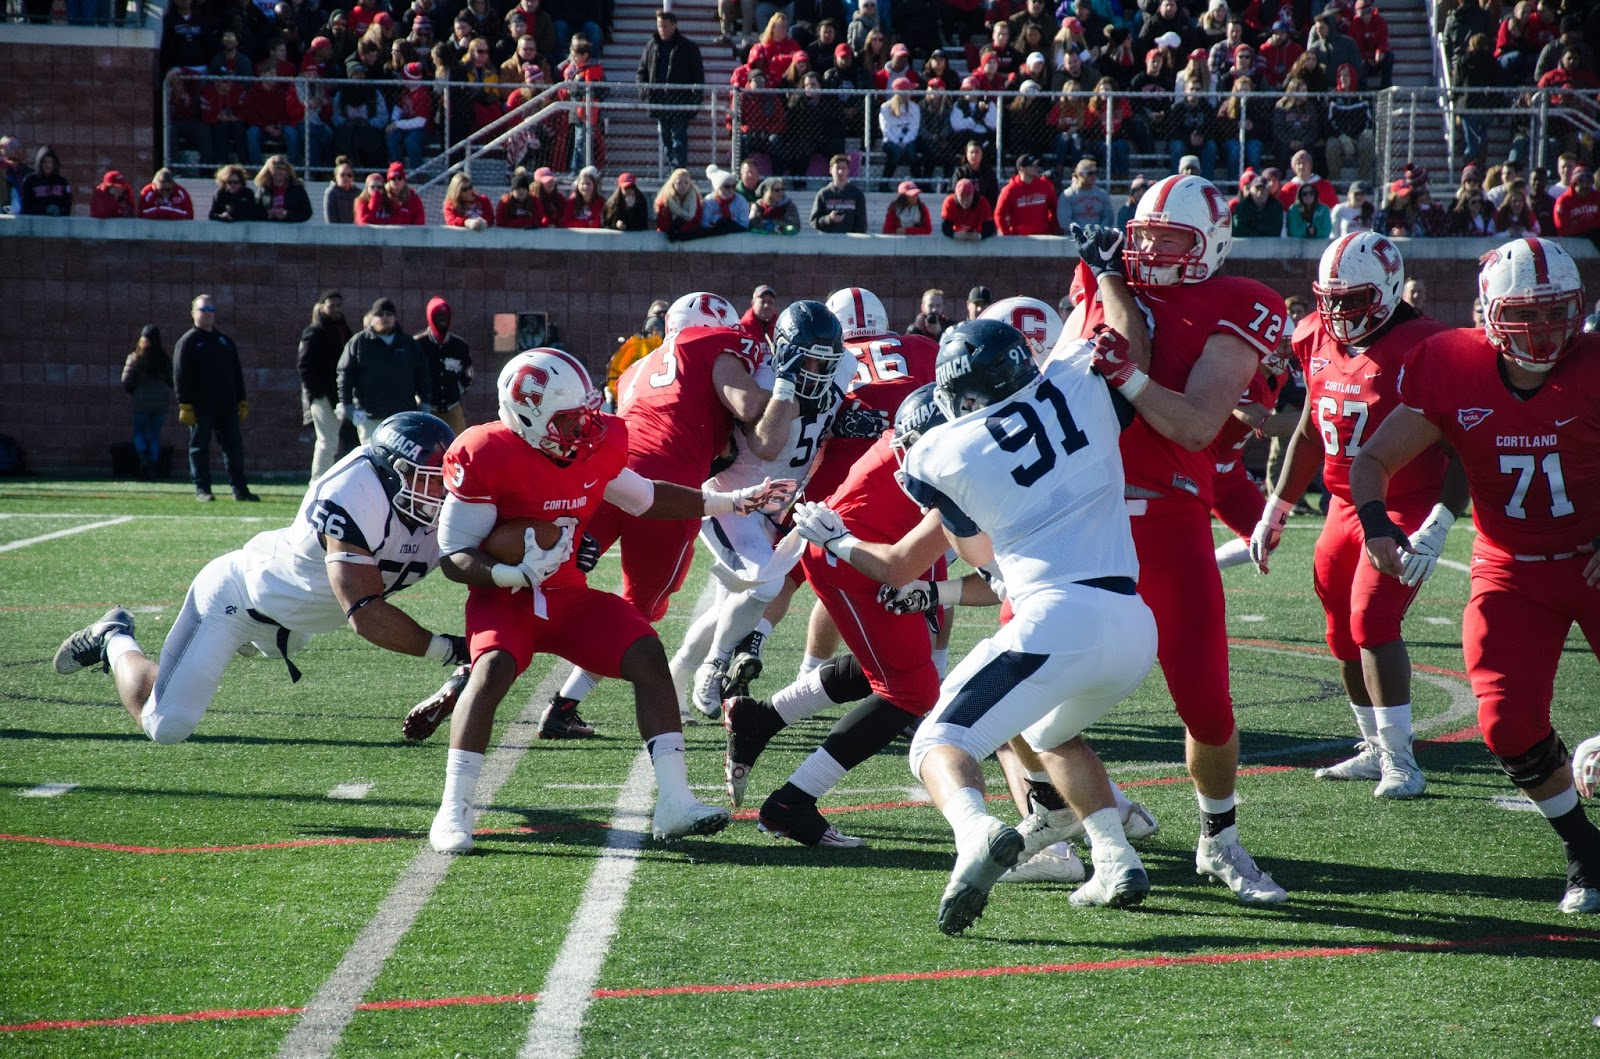 Scenes from the Fall: Cortaca Jug Game